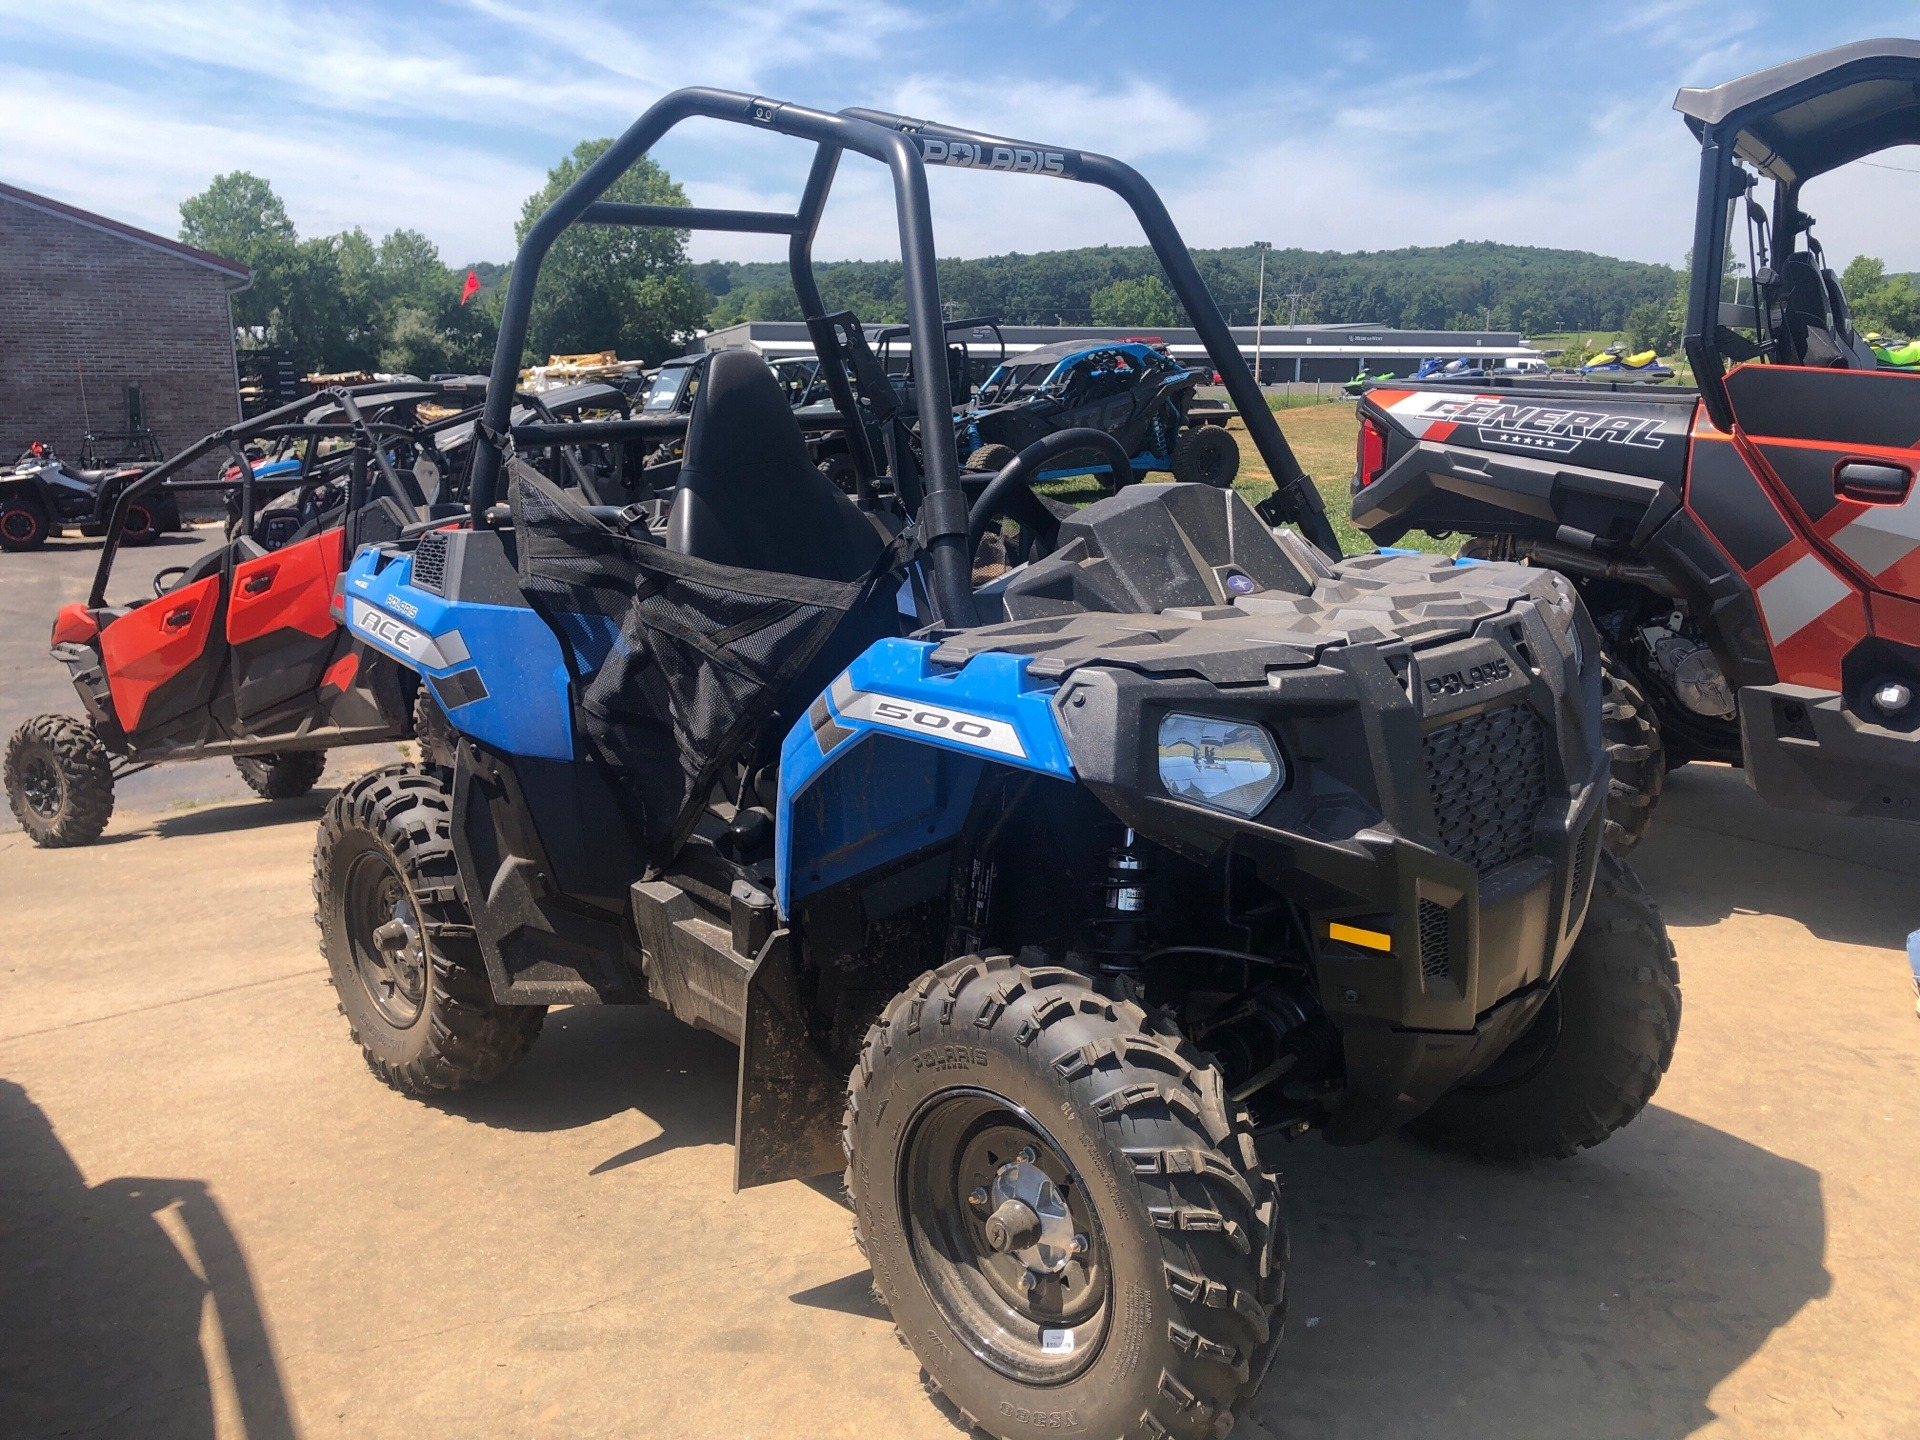 2019 Polaris Ace 500 in Farmington, Missouri - Photo 1